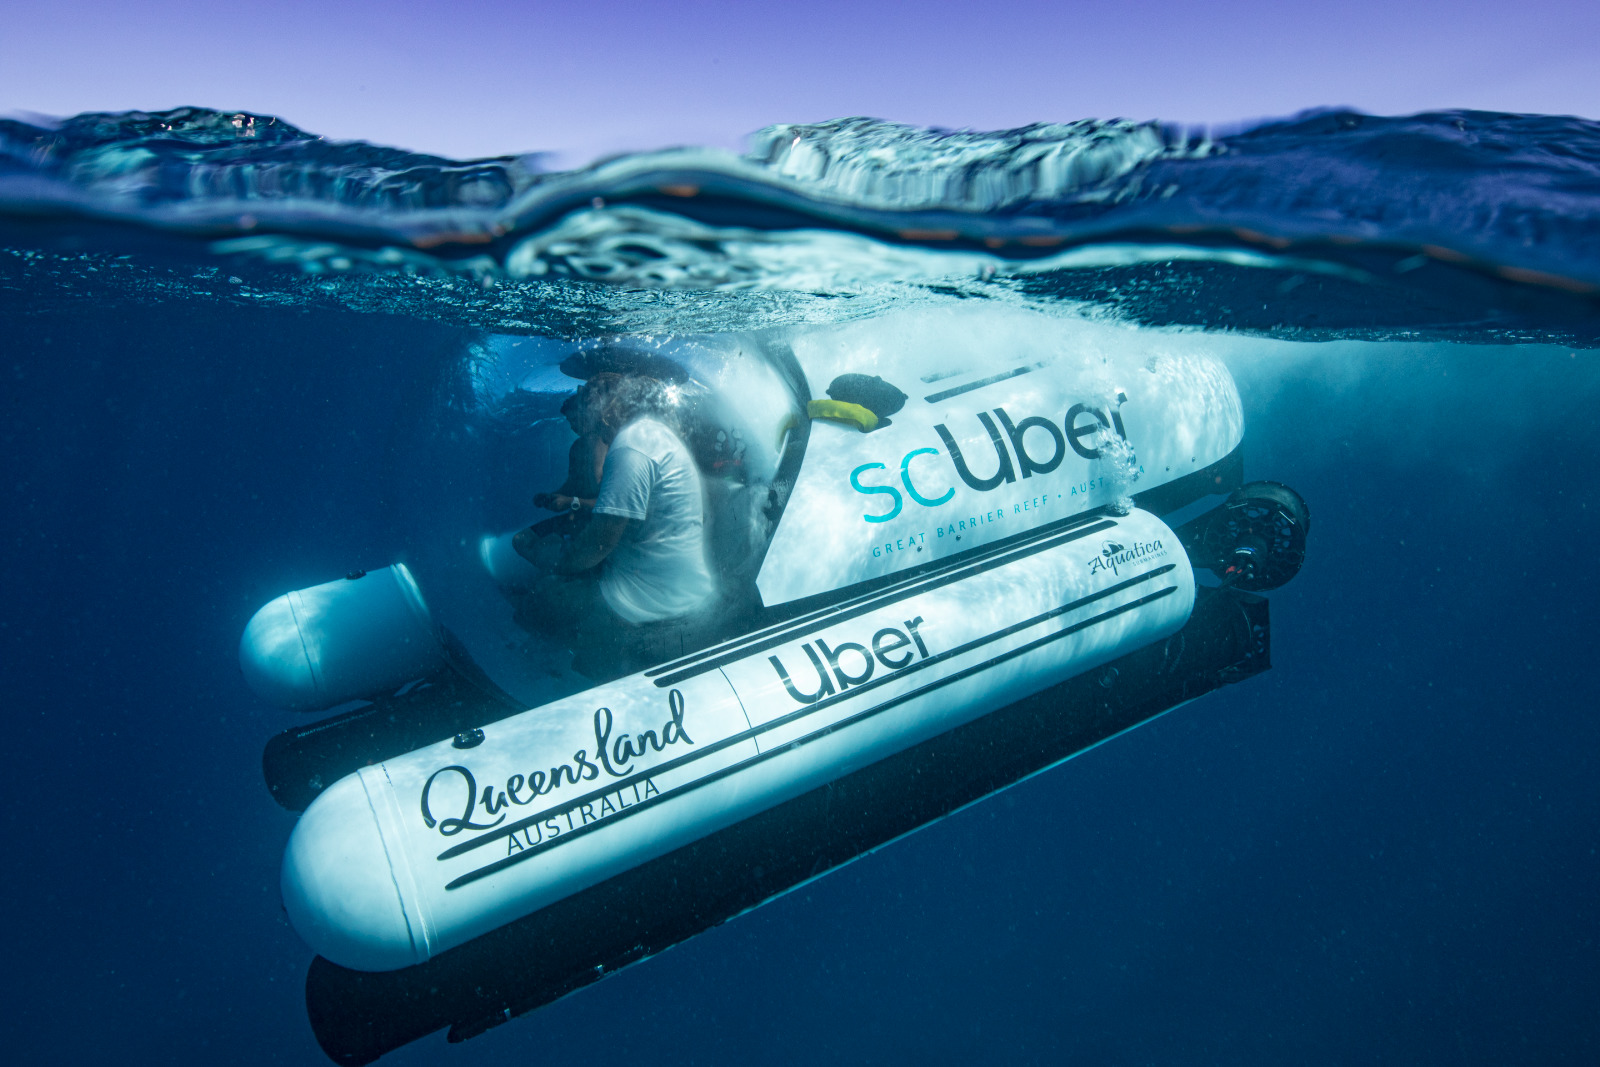 World's First Rideshare Submarine Has Launched at the Great Barrier Reef